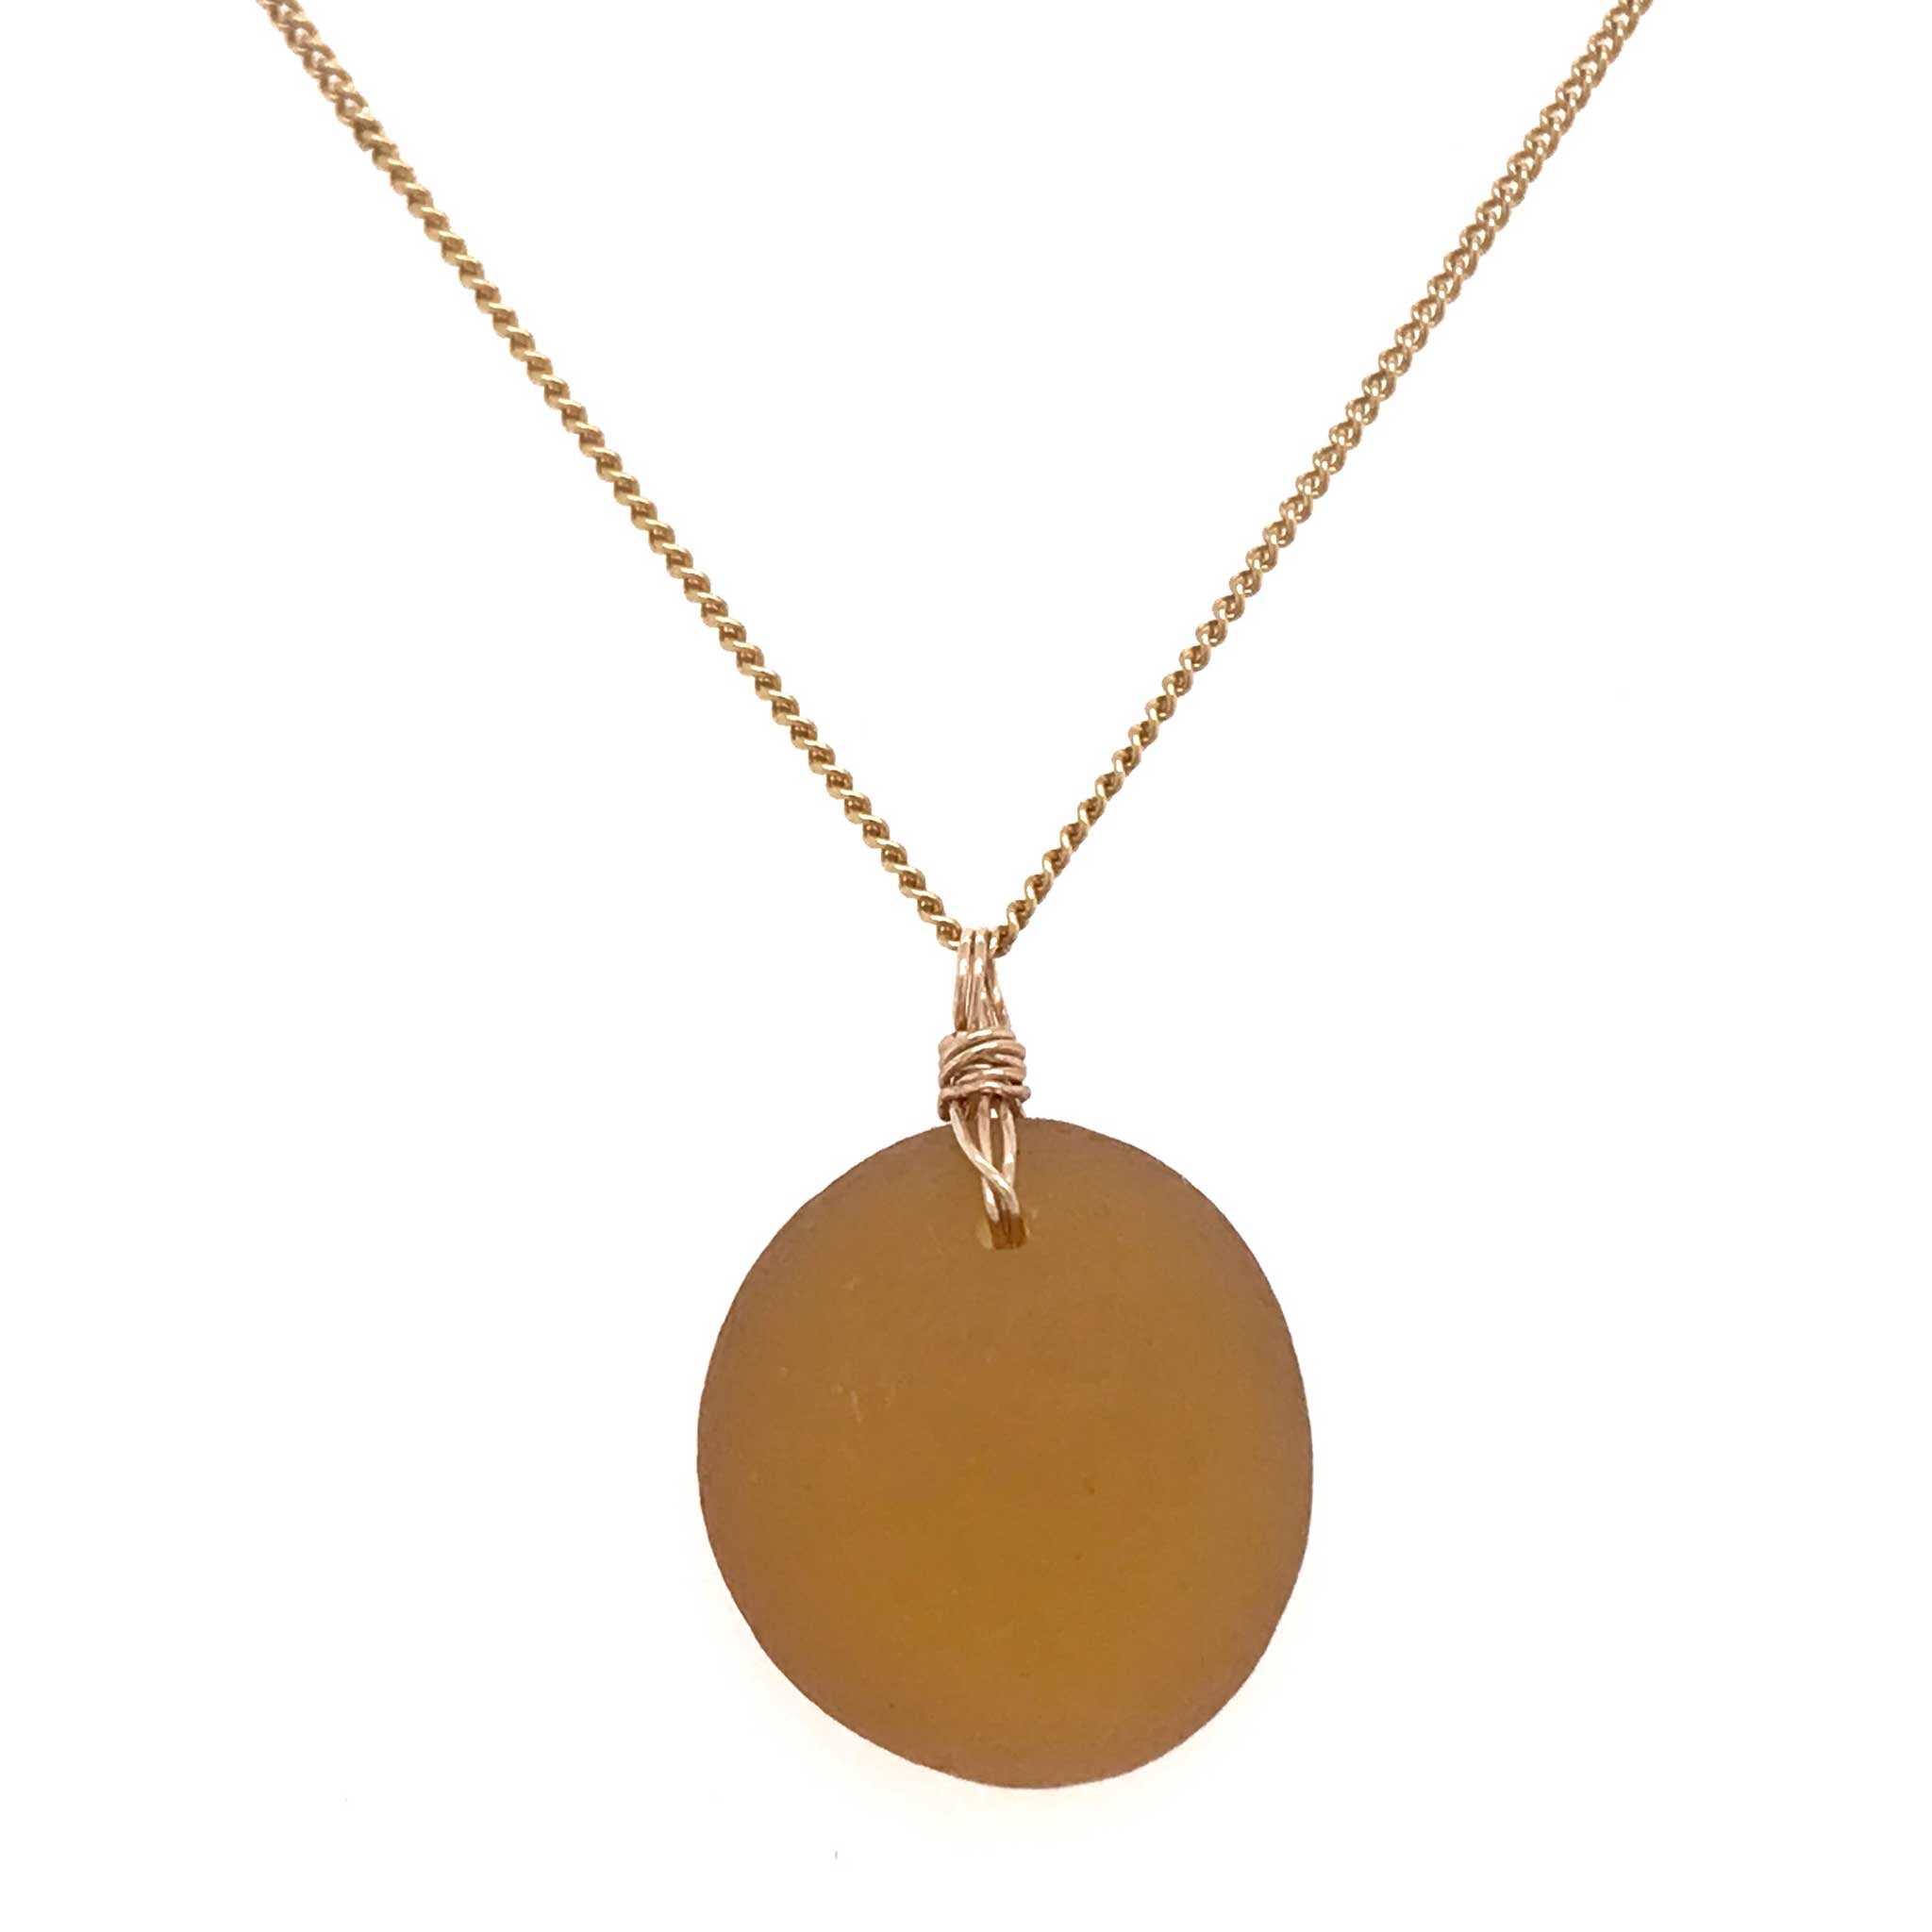 gifts for women jewellery store Sydney amber necklace kriket broadhurst jewelry